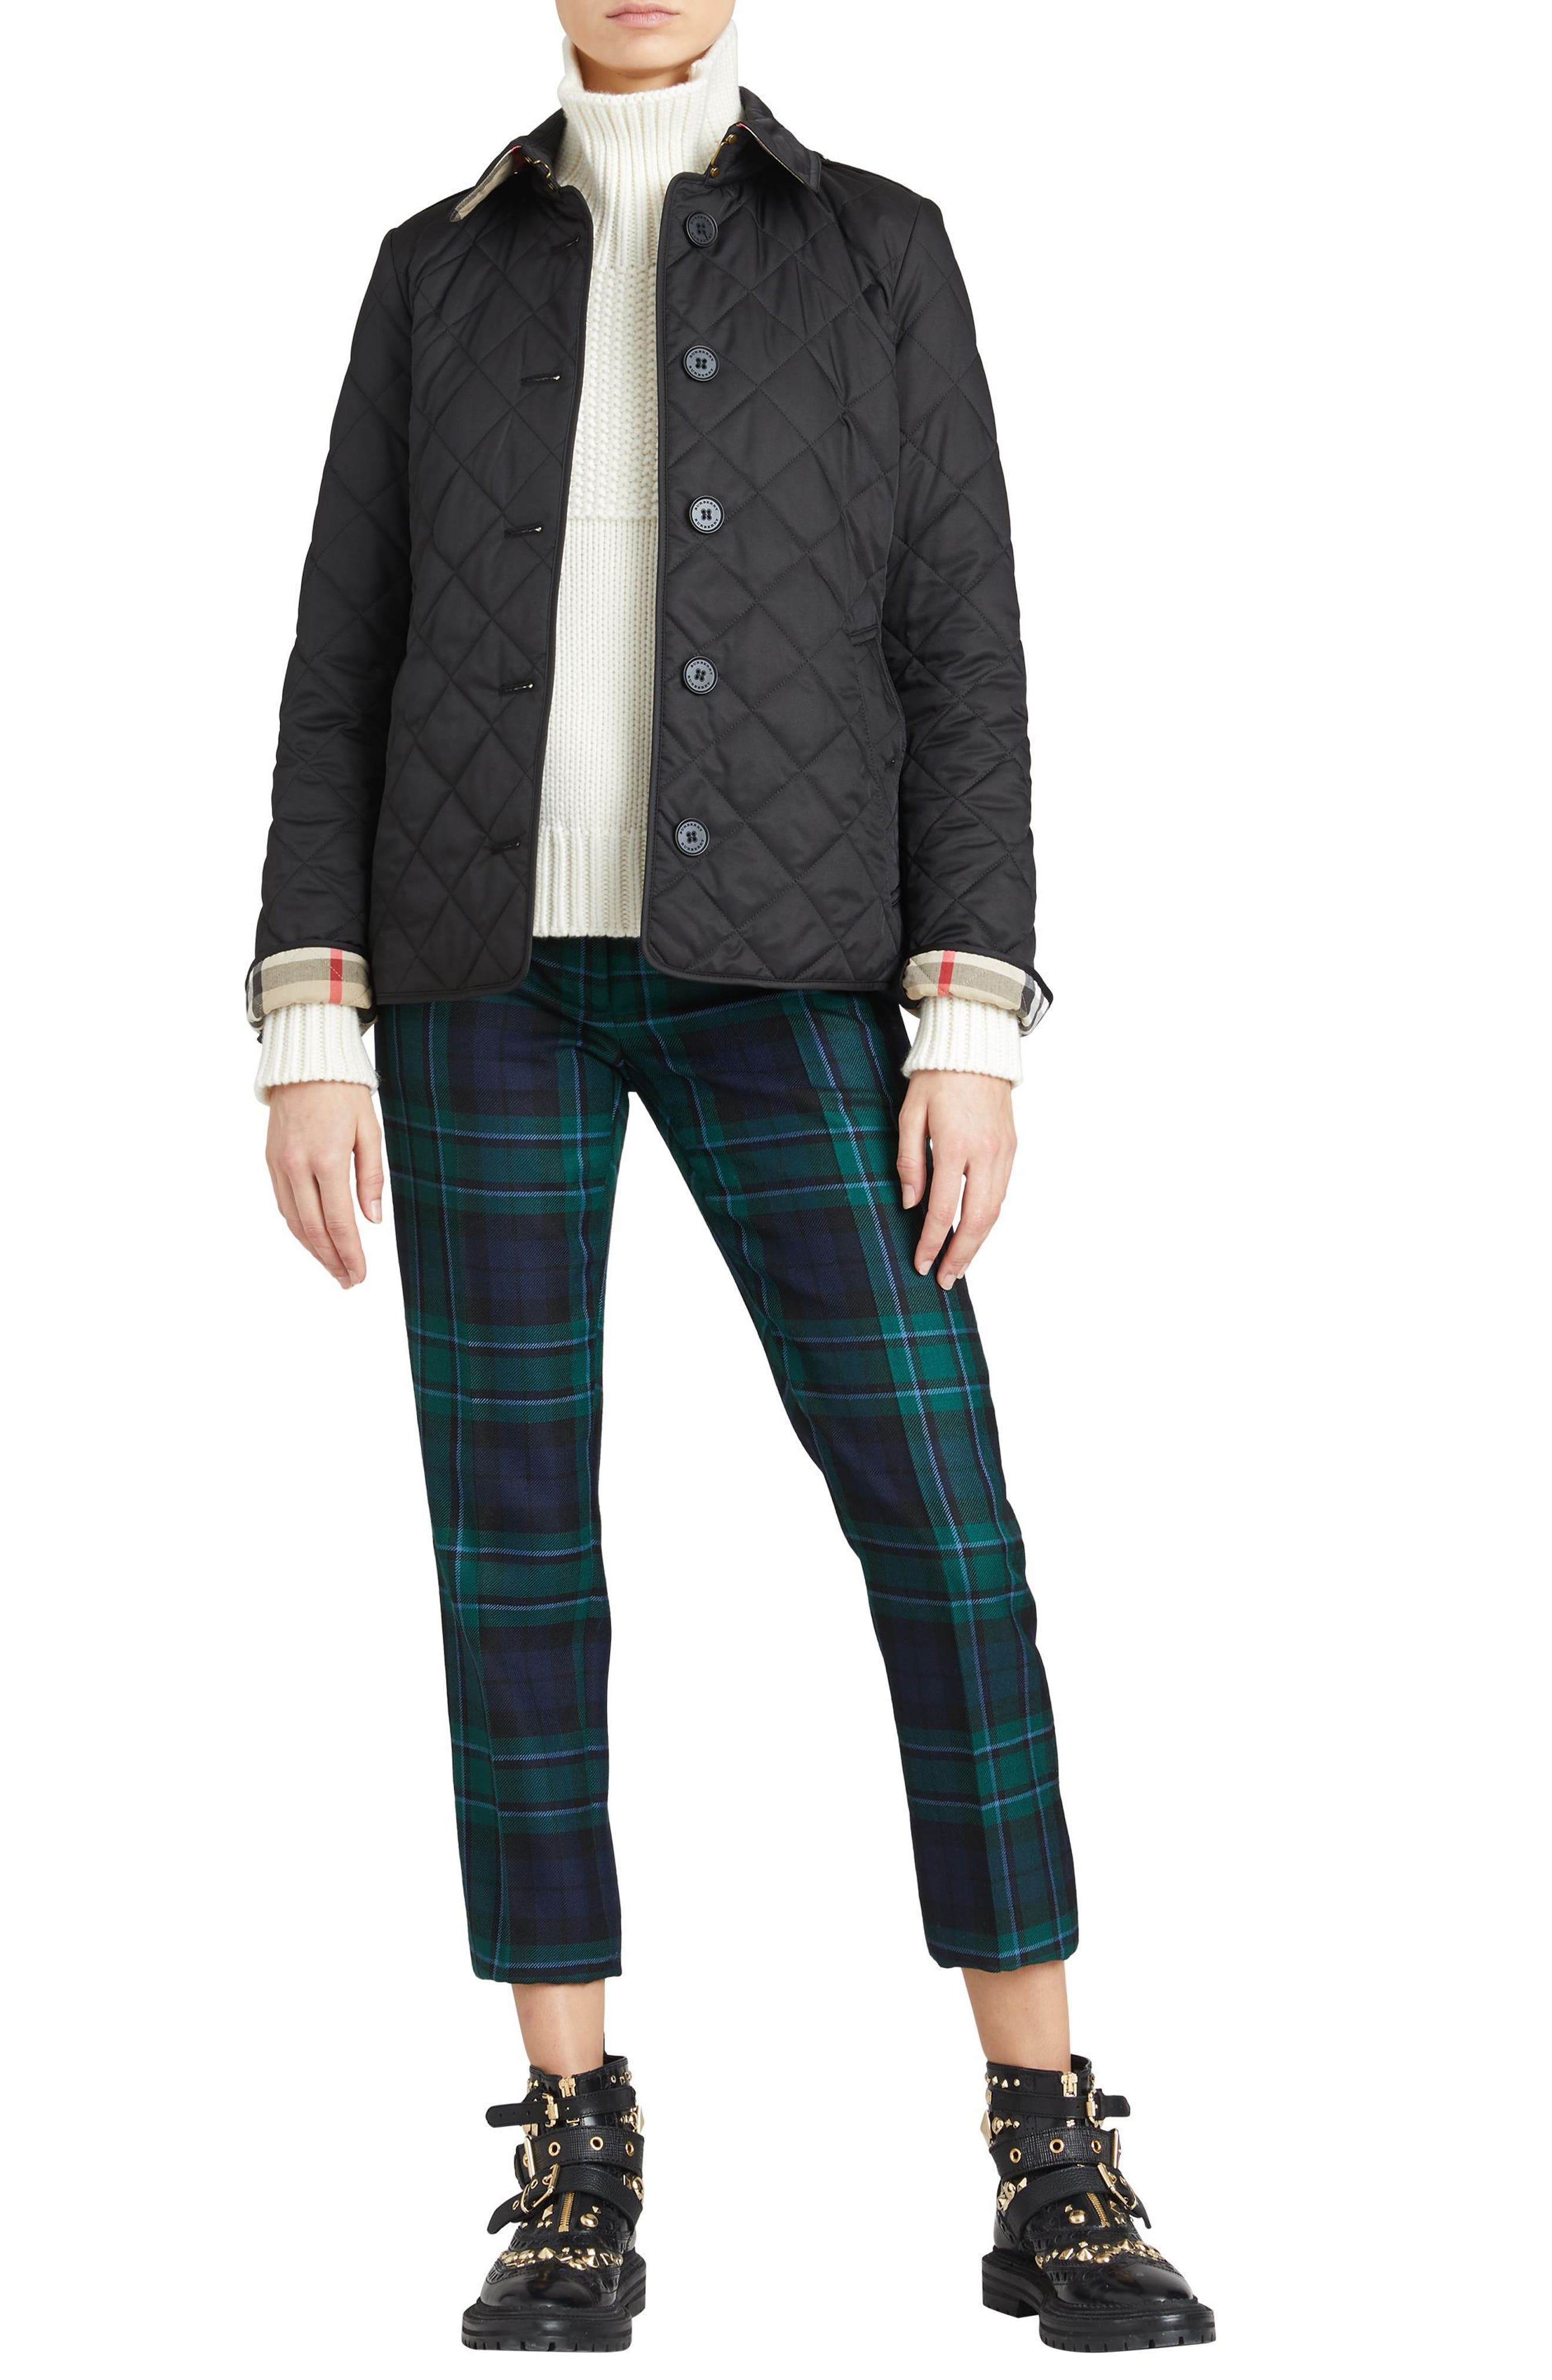 BURBERRY, Frankby Quilted Jacket, Alternate thumbnail 7, color, 001